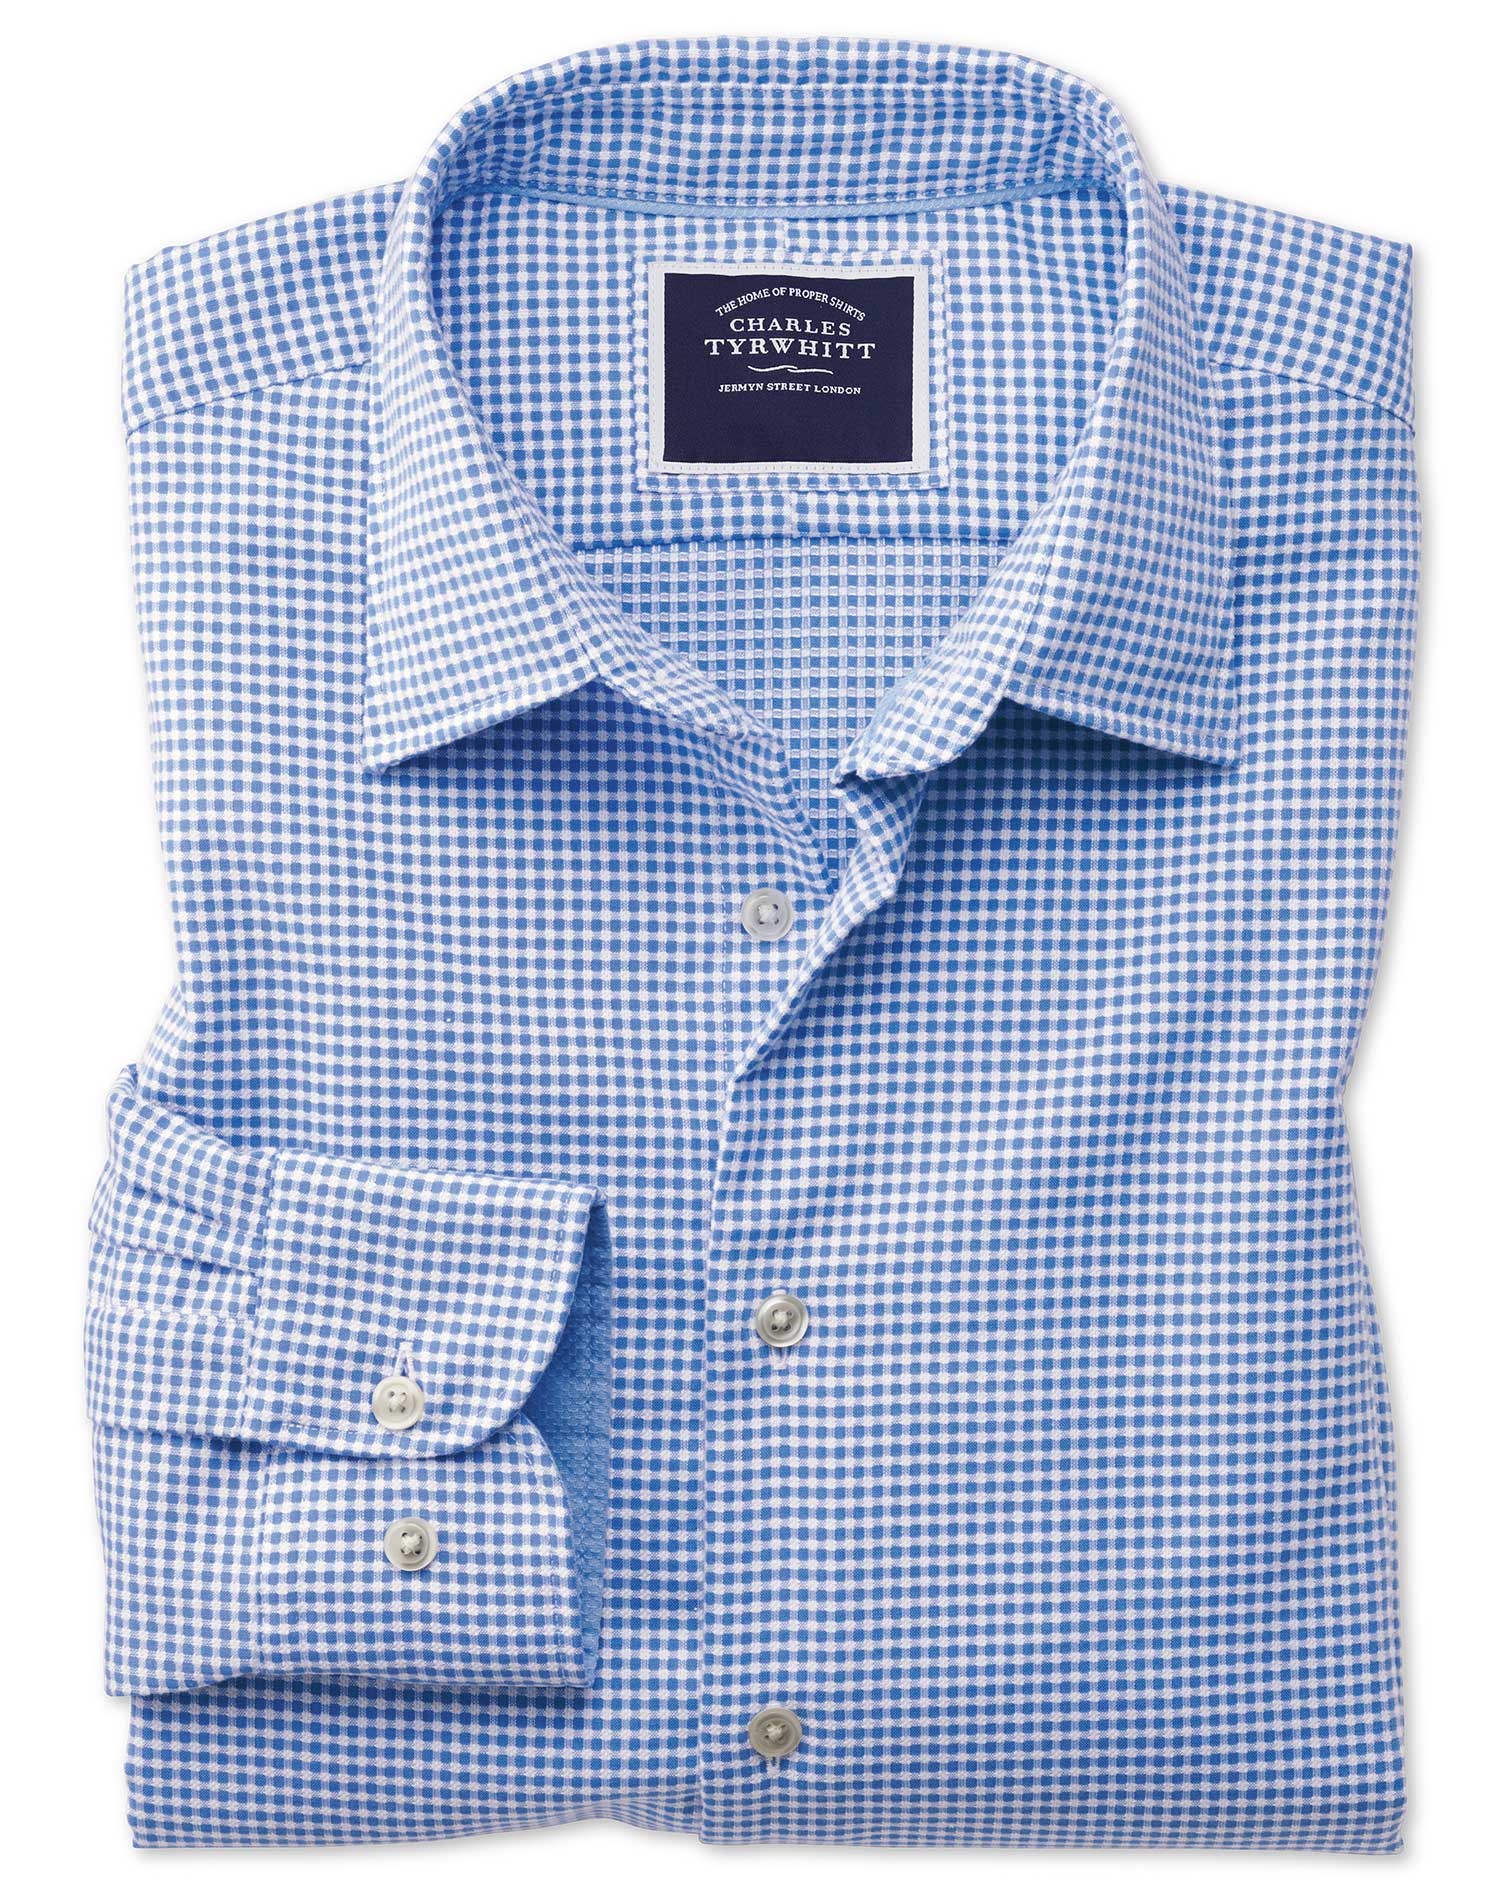 Classic Fit Washed Blue Textured Check Cotton Shirt Single Cuff Size Large by Charles Tyrwhitt